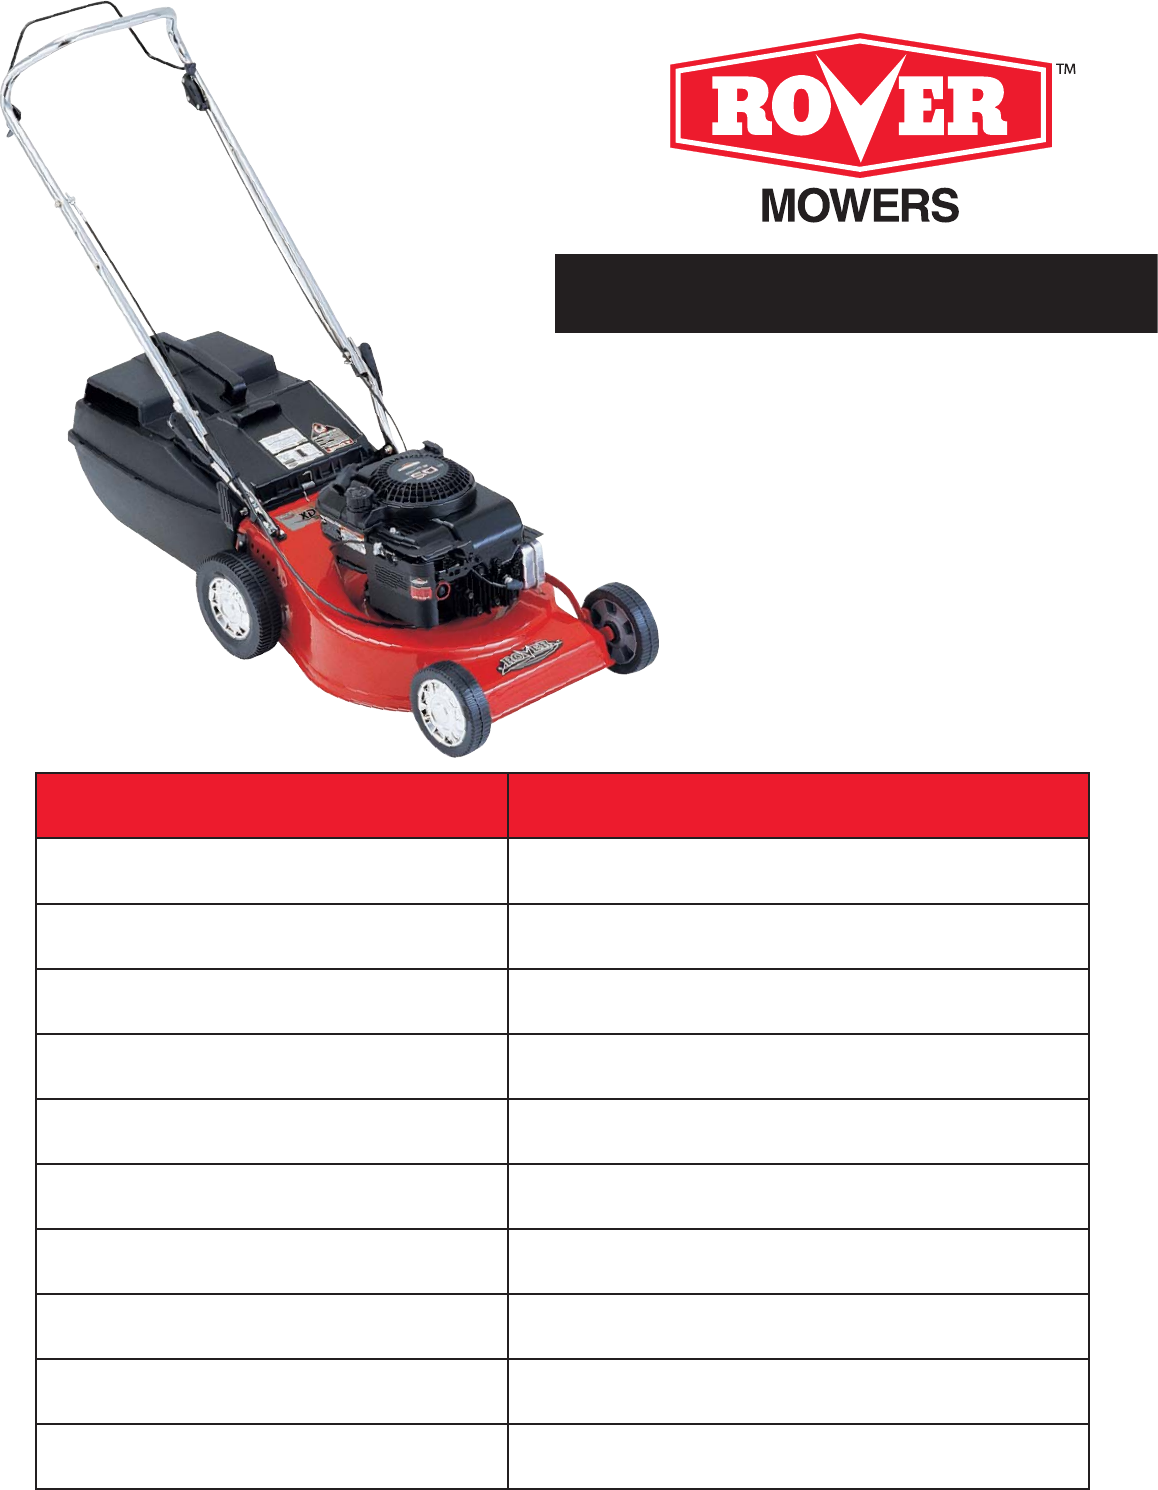 rover lawn mower 7091 user guide manualsonline com rh lawnandgarden manualsonline com rover lawn mower parts rover lawn mower parts